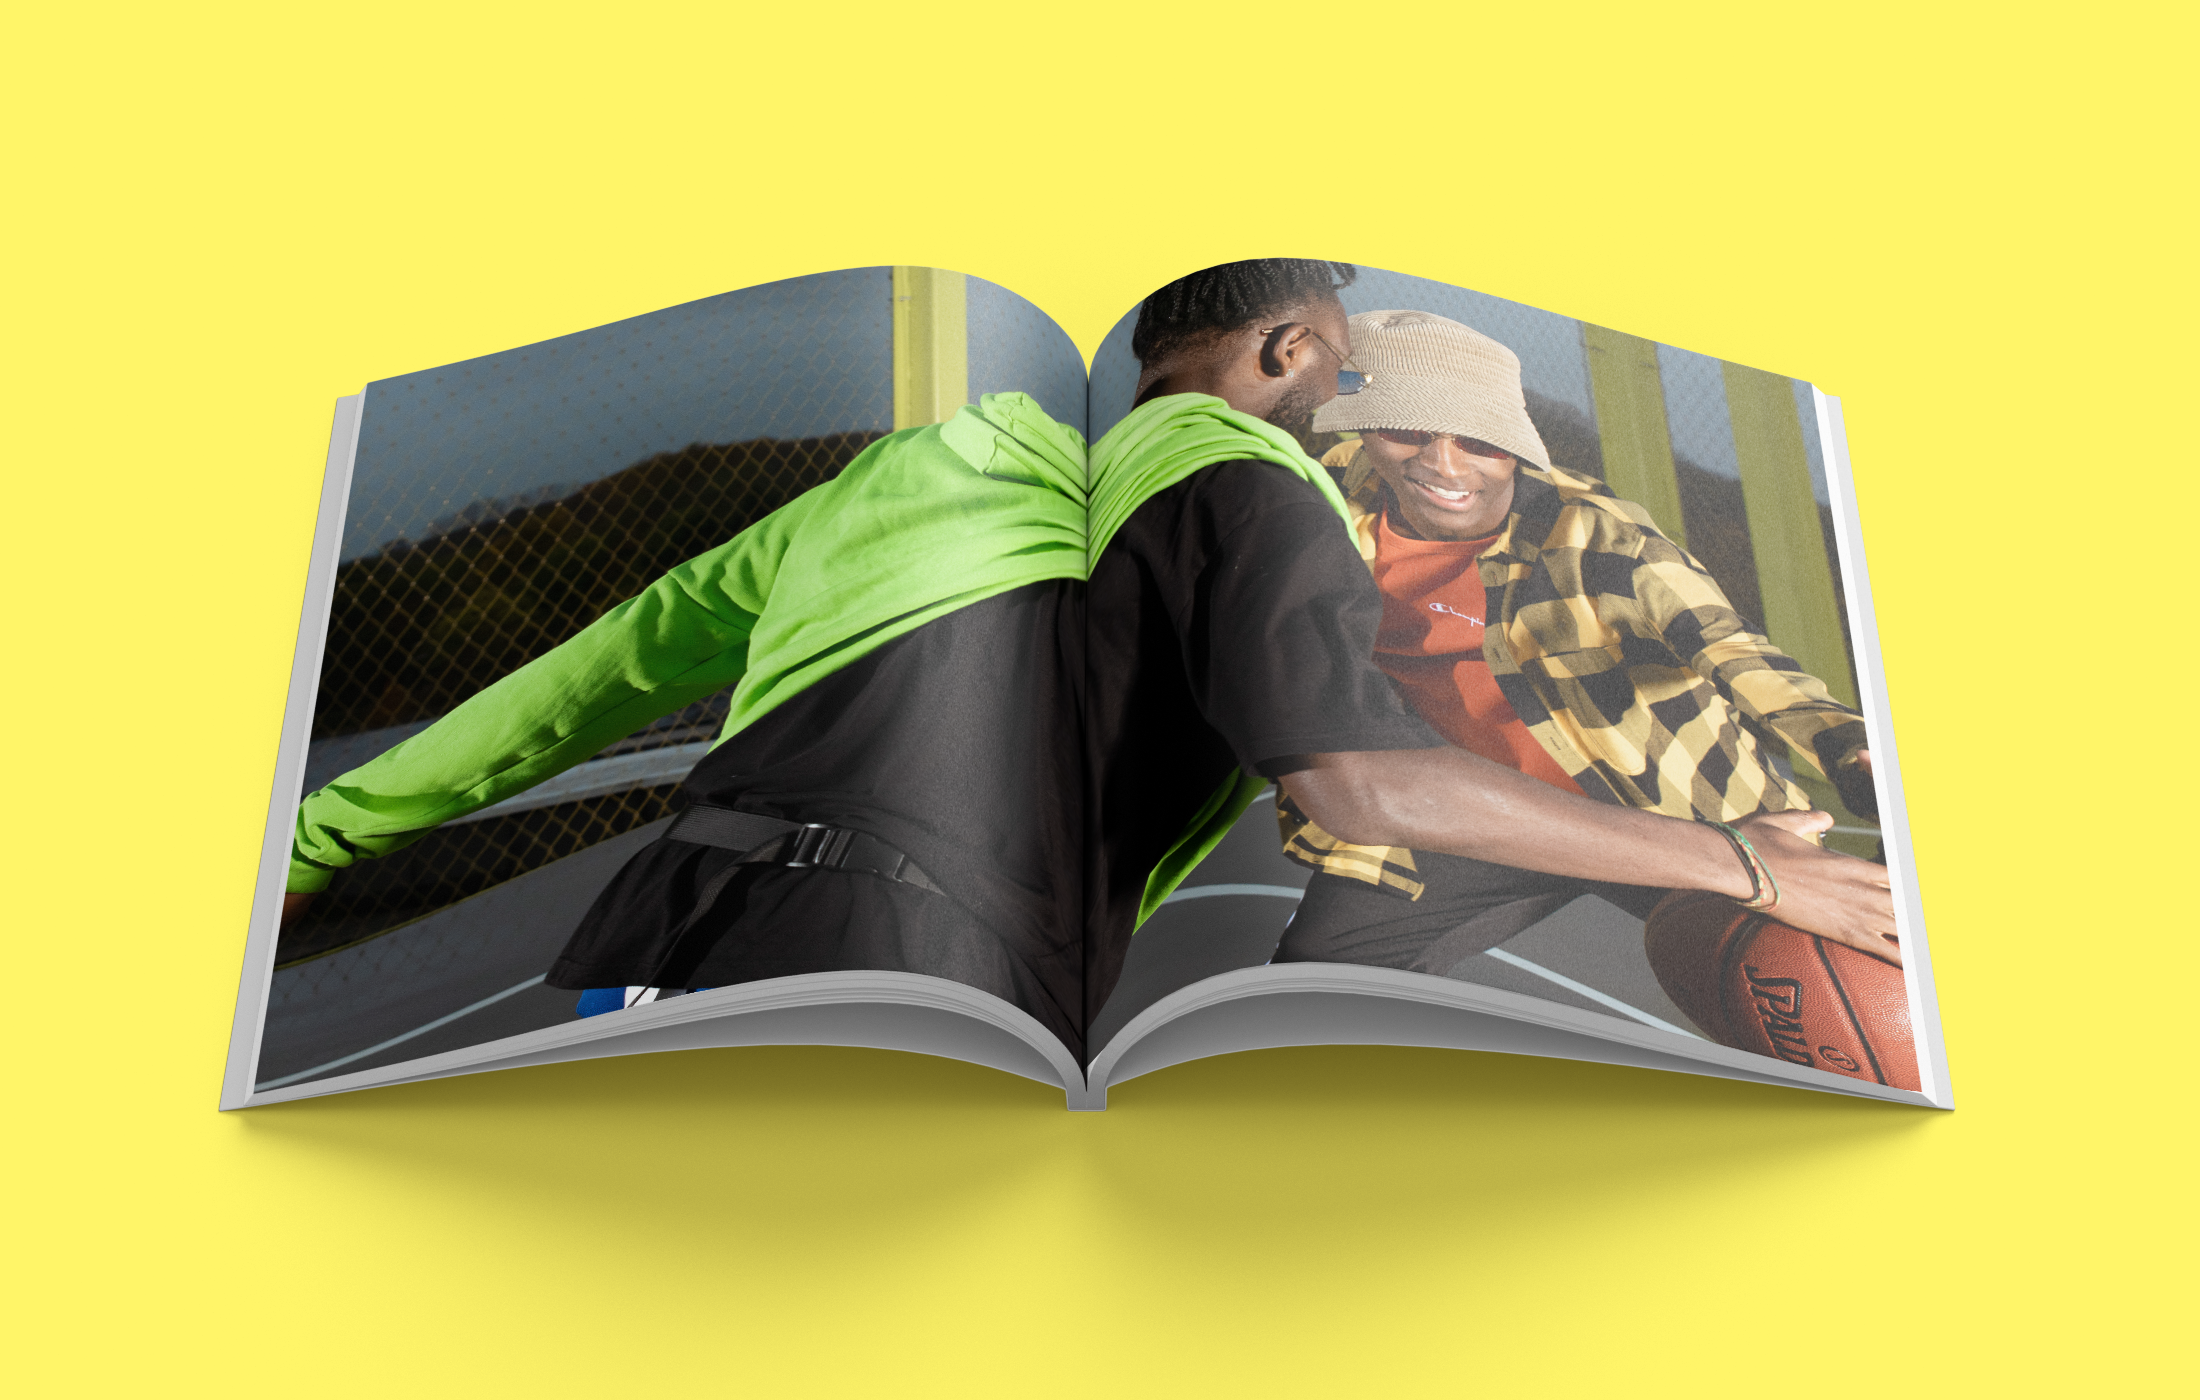 the-best-of-model-citizen-magazine-by-macky-suson-the-most-inclusive-fashion-magazine-33.png